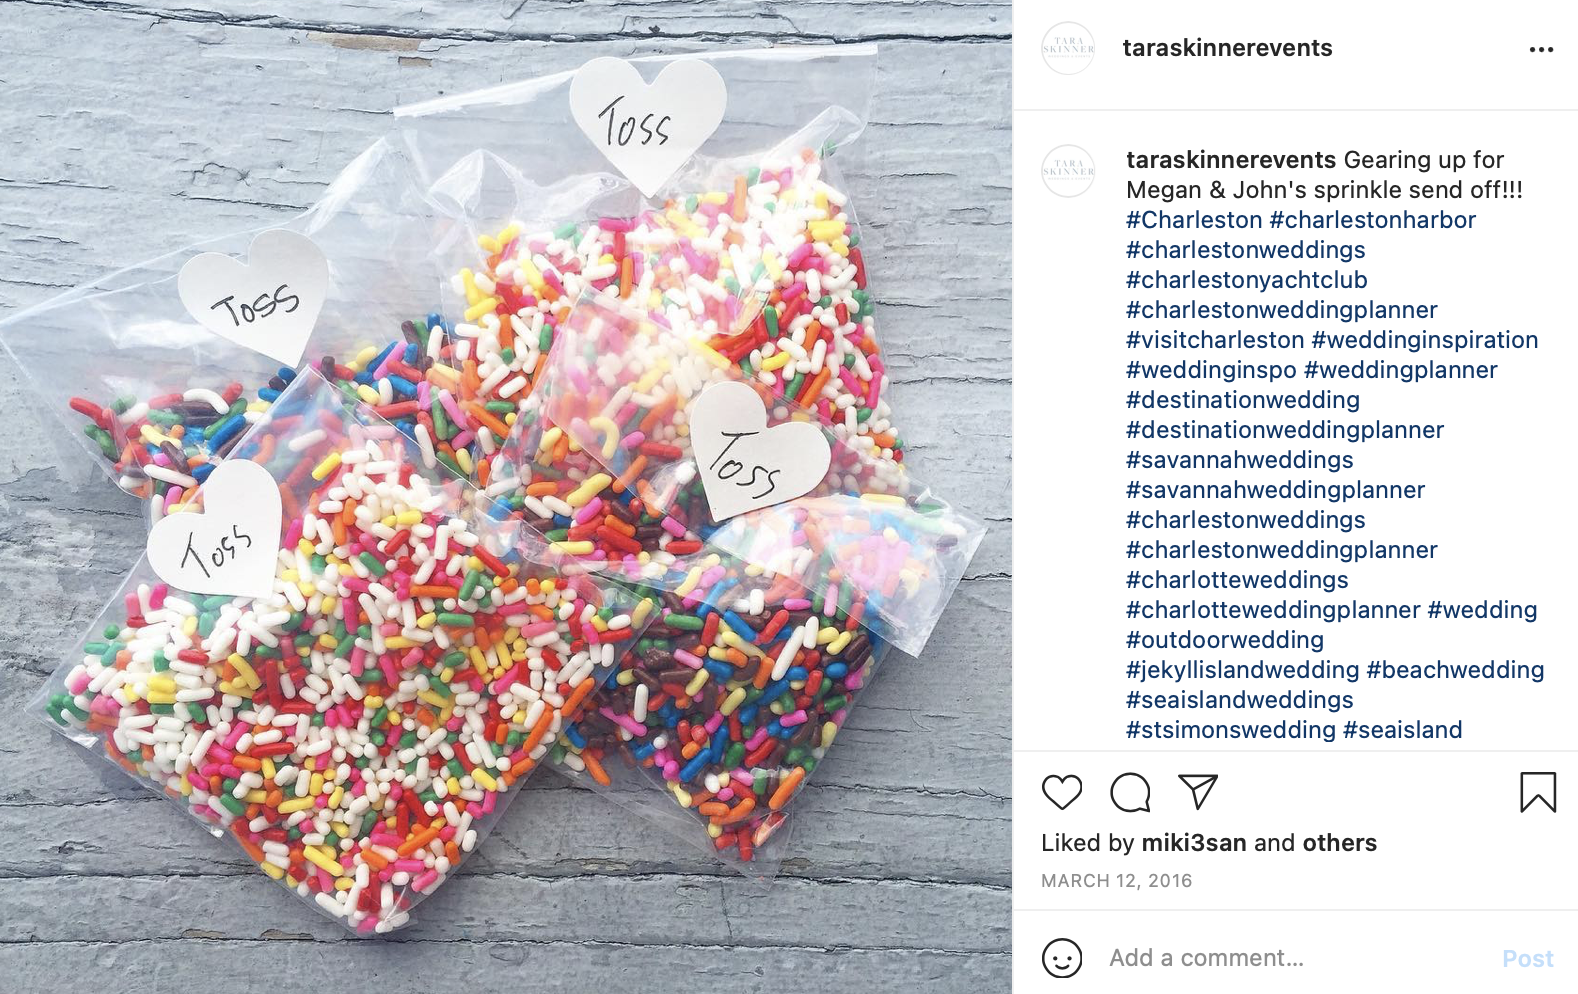 candy sprinkles in small plastics bags